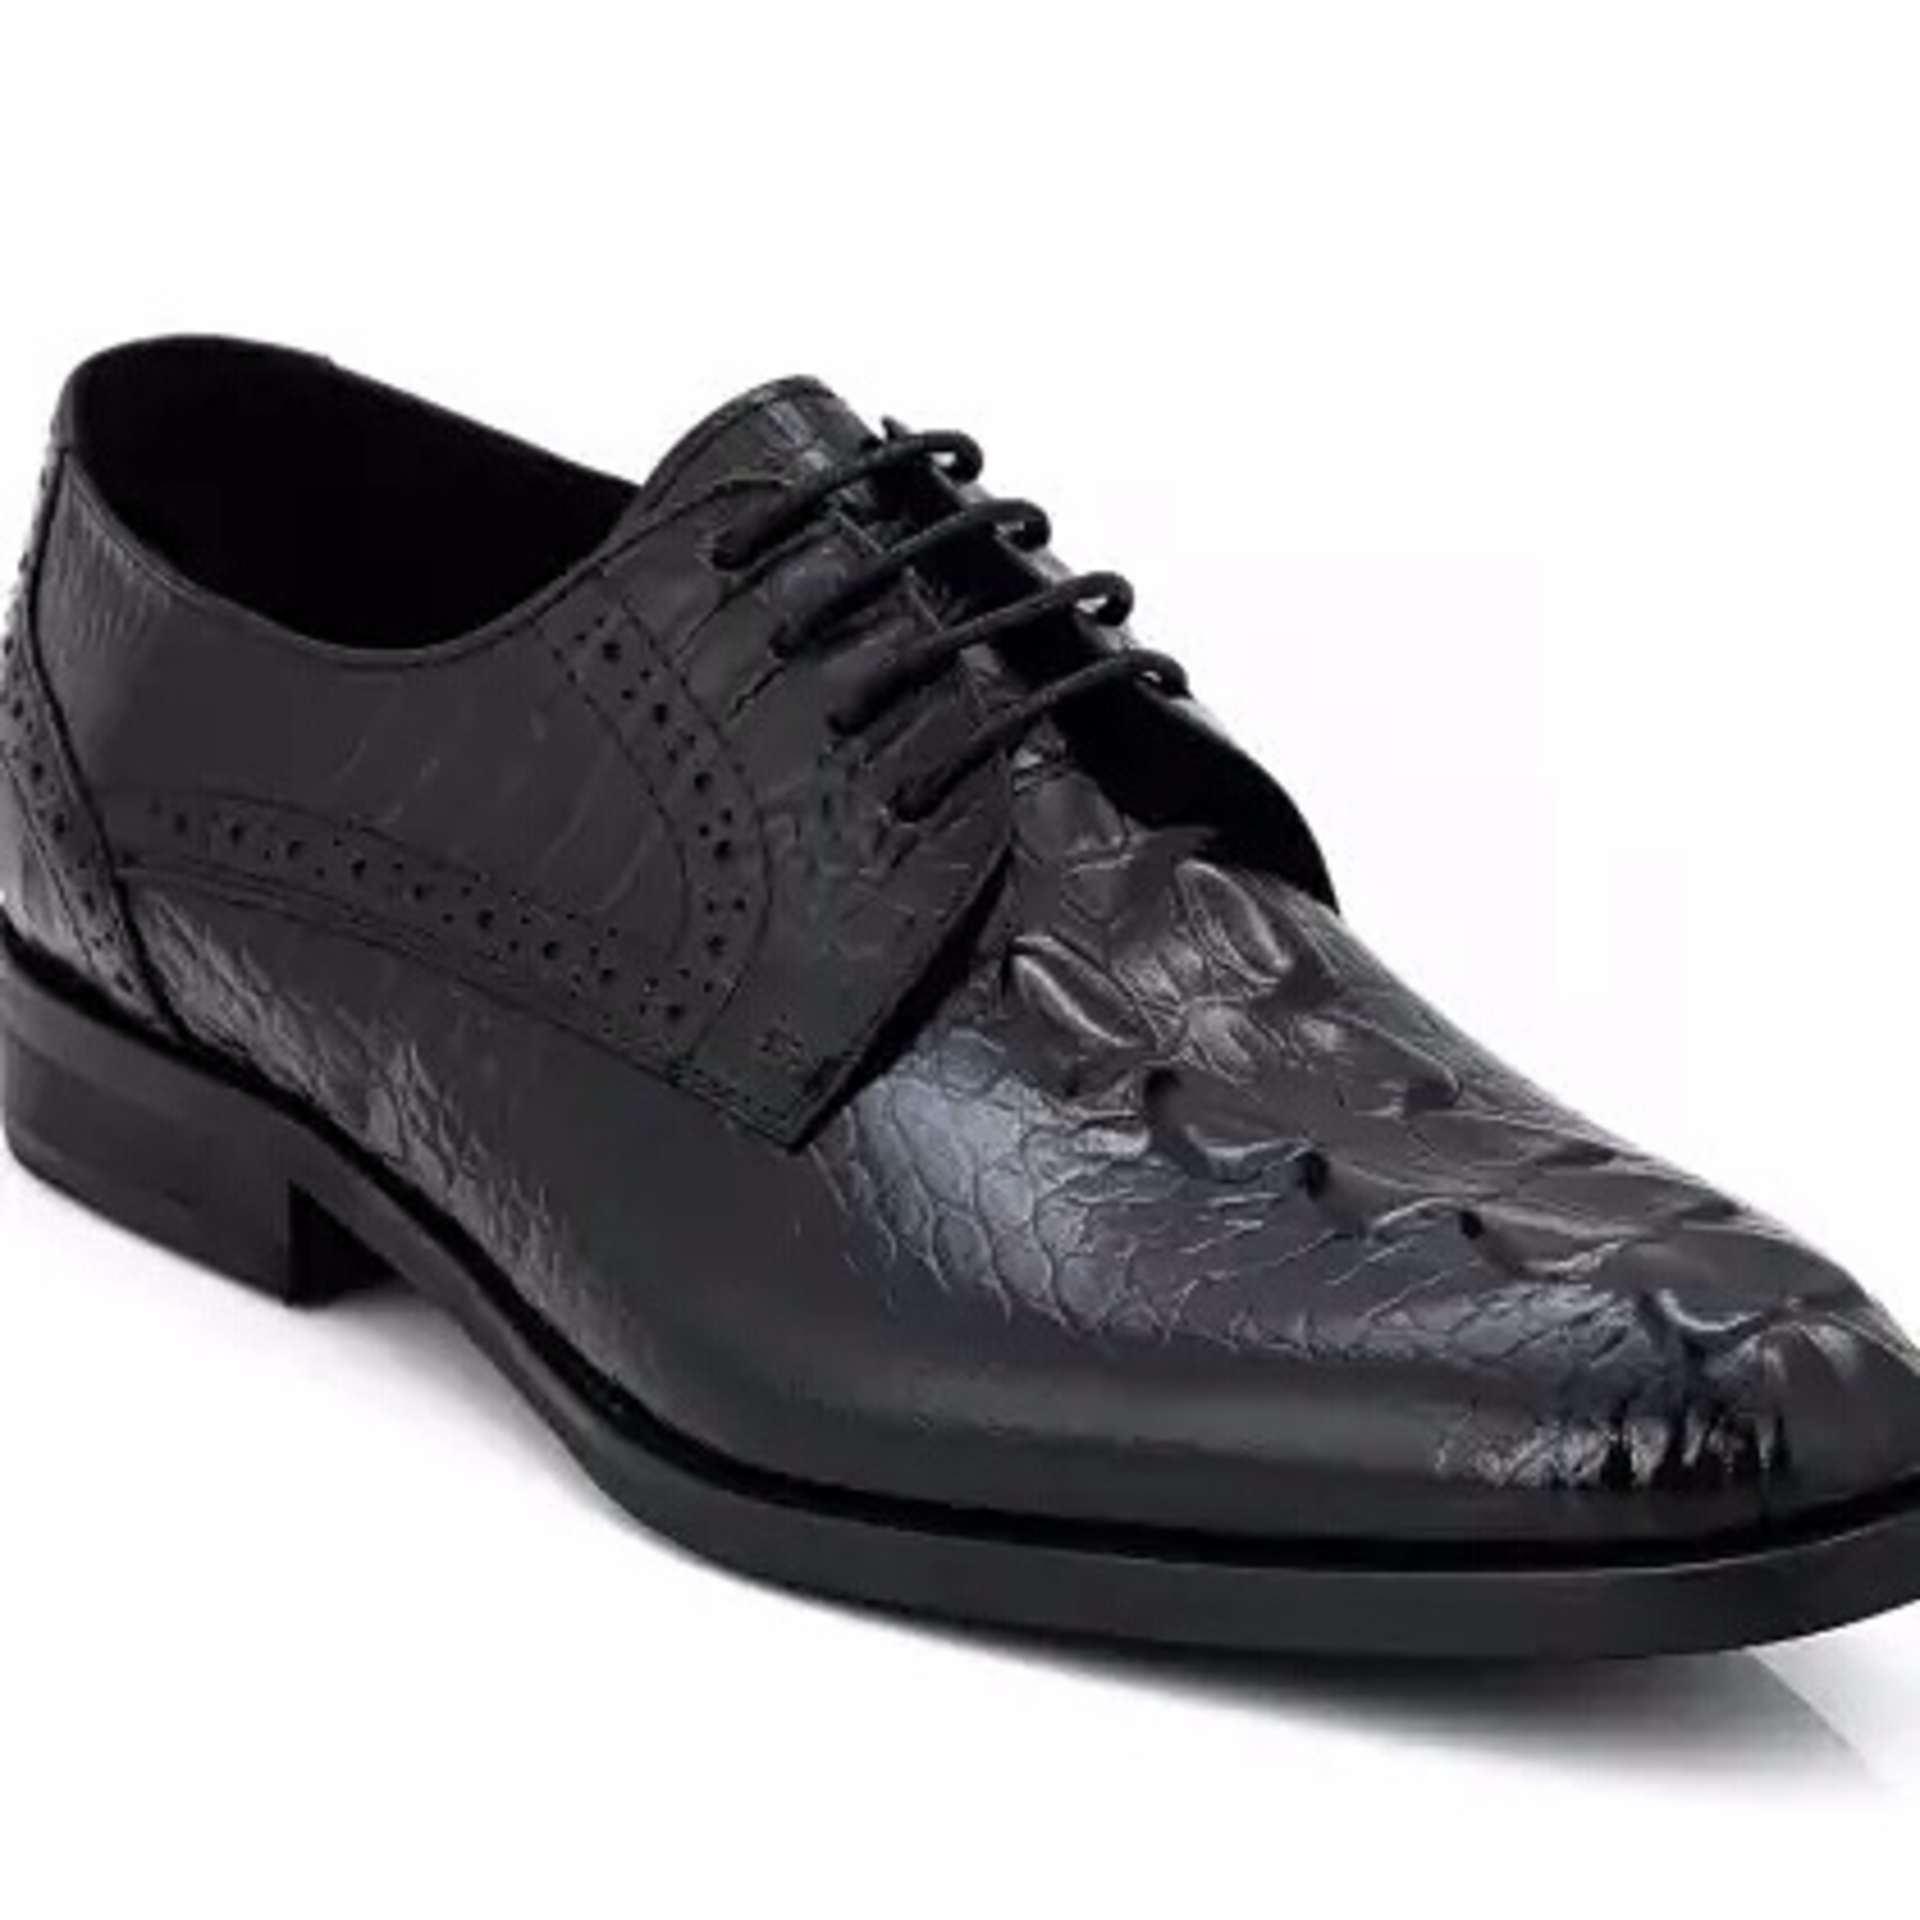 Why are mens shoes more expensive? image